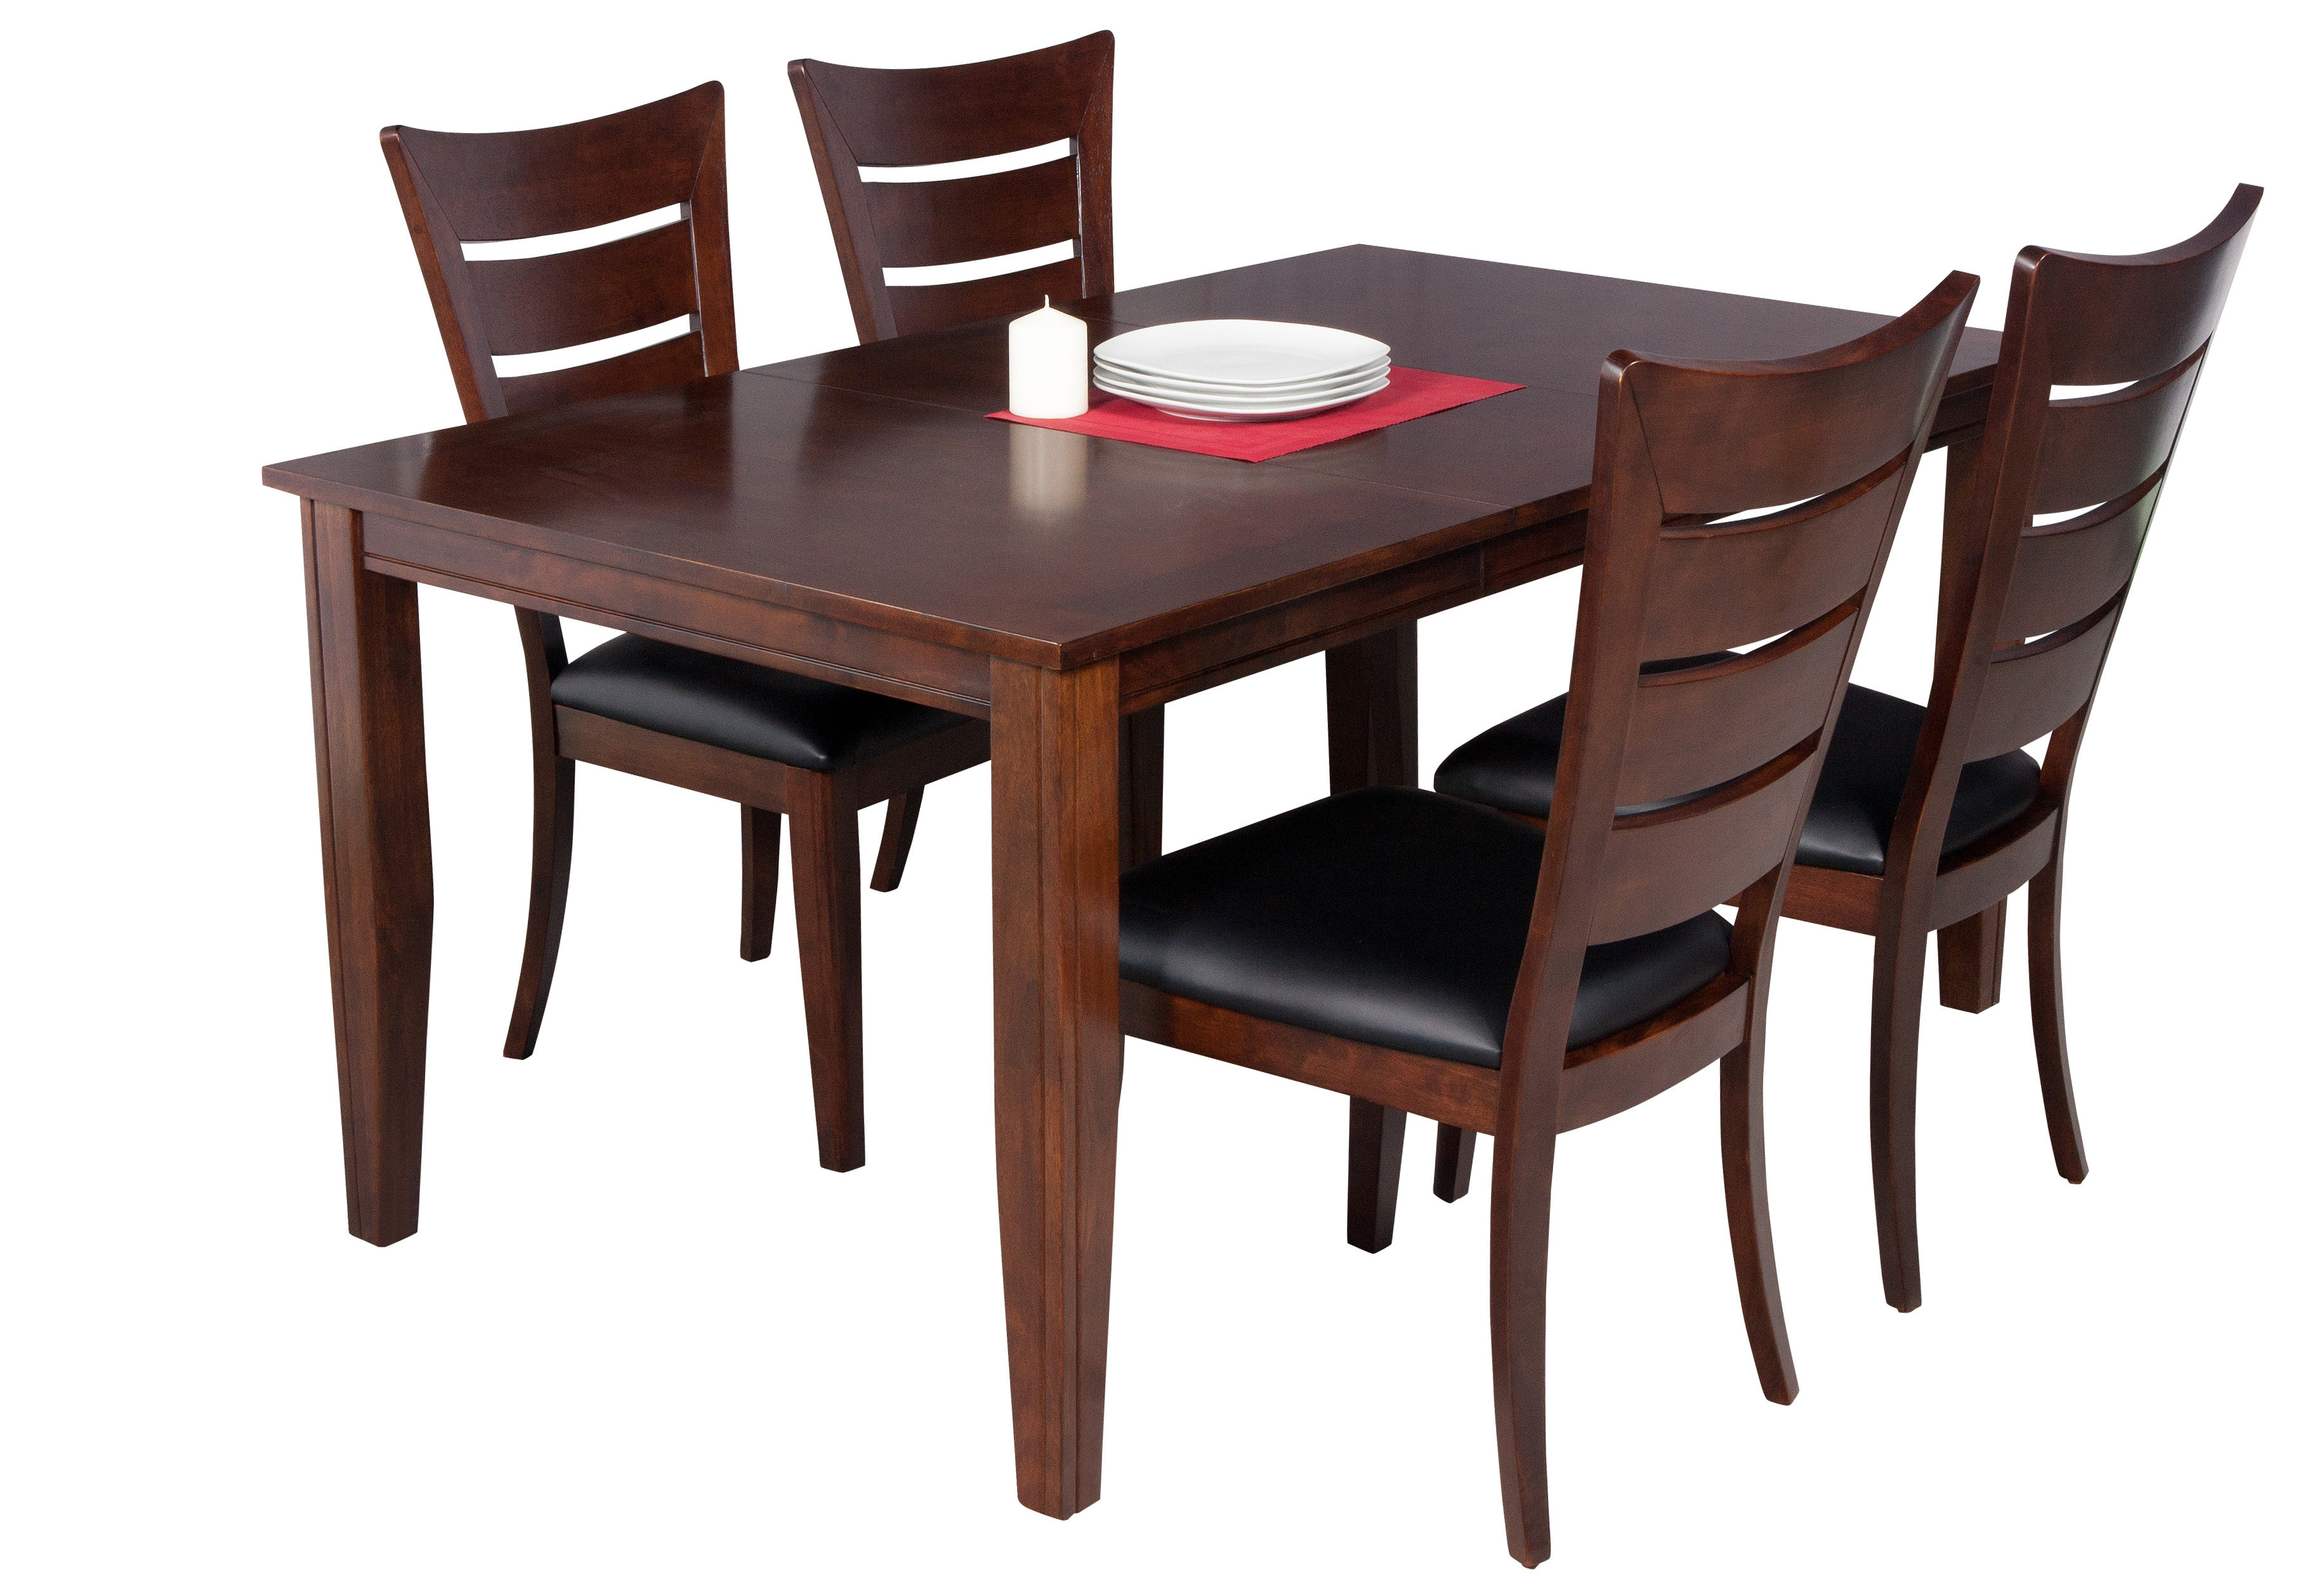 Aden 5 Piece Solid Wood Dining Set Pertaining To 2017 Adan 5 Piece Solid Wood Dining Sets (Set Of 5) (View 5 of 20)